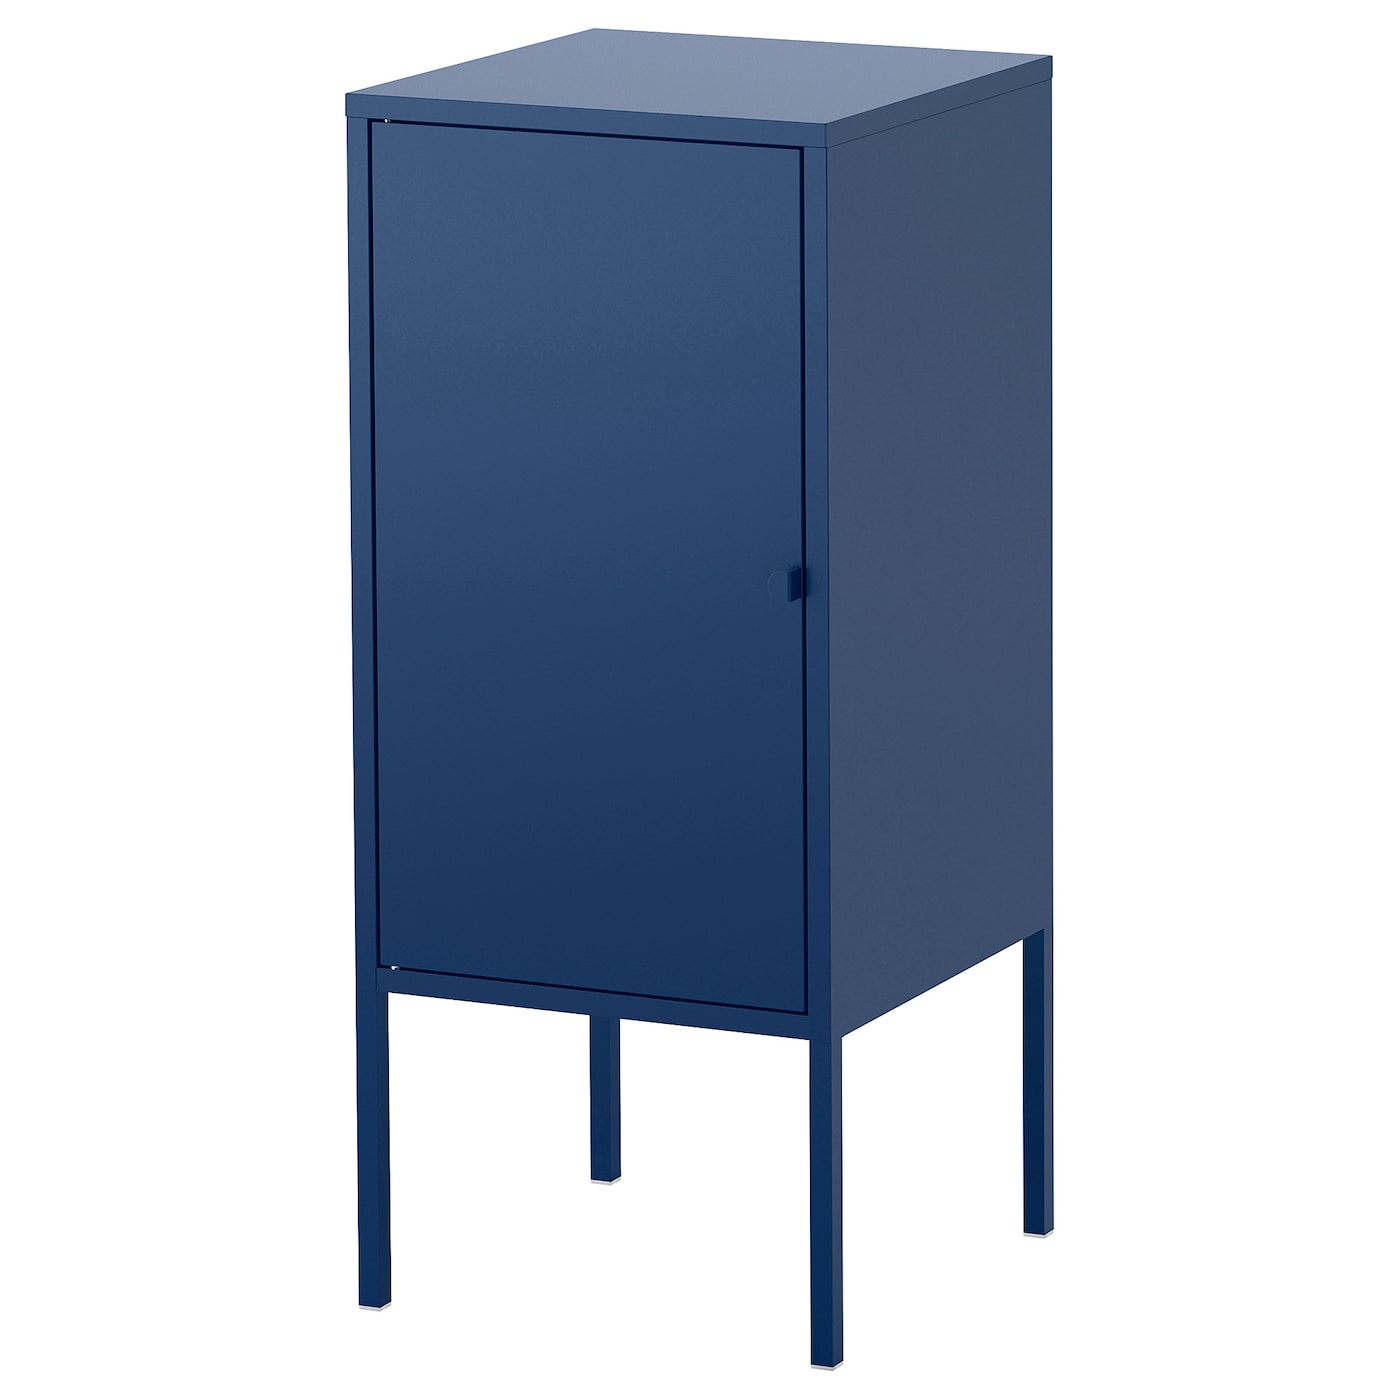 storage cabinets storage cupboards ikea ireland. Black Bedroom Furniture Sets. Home Design Ideas